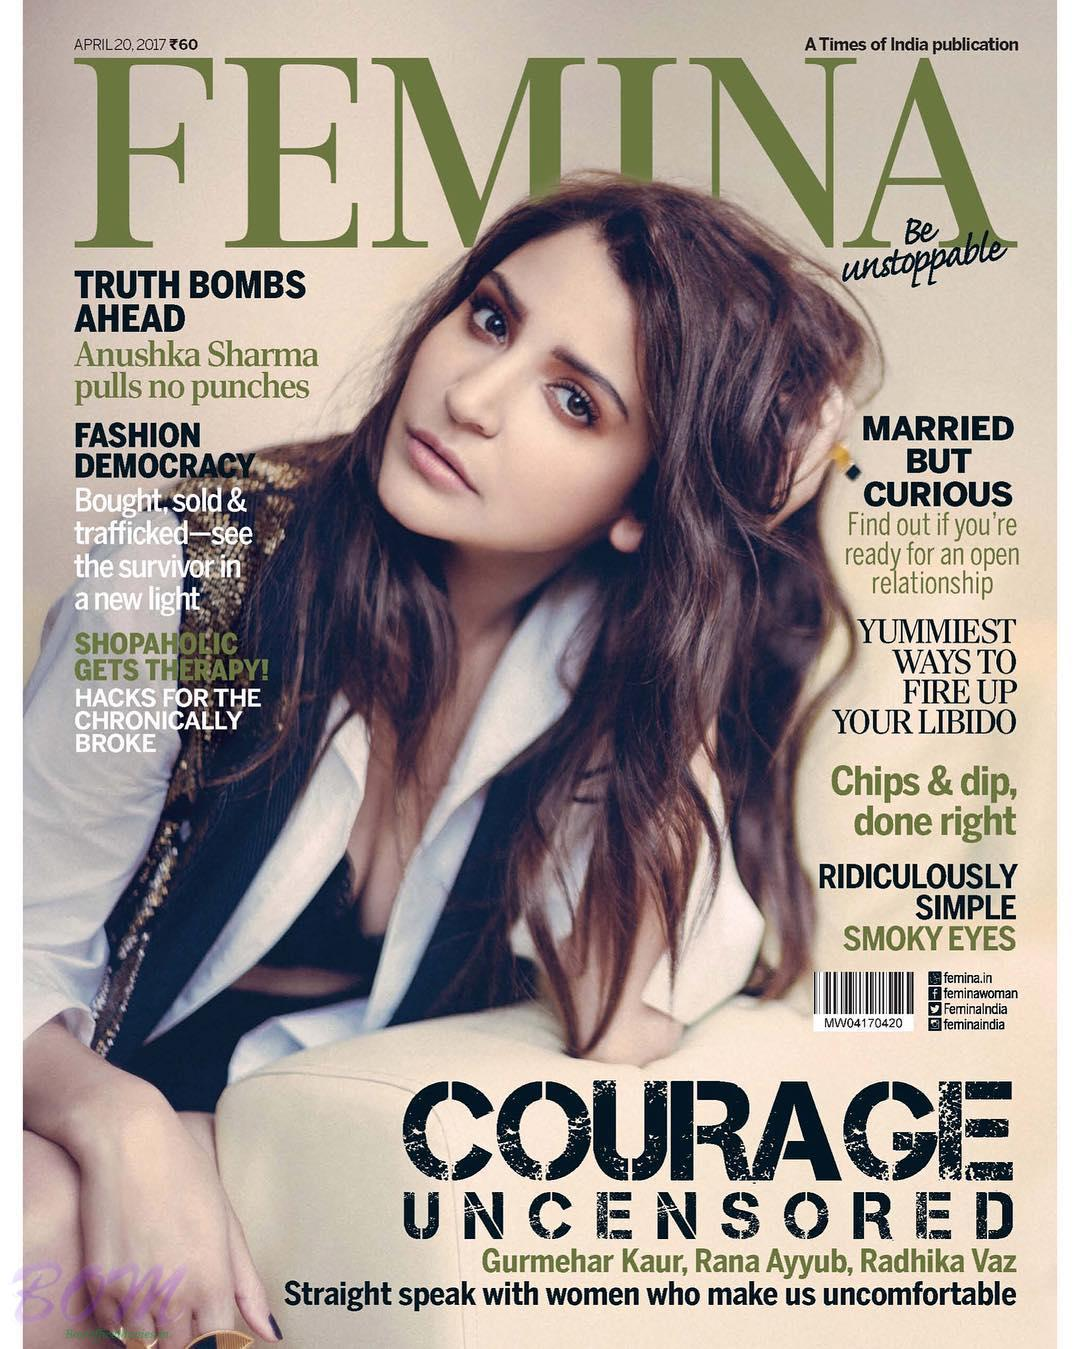 Anushka Sharma Cover Girl for FEMINA Magazine April 2017 issue